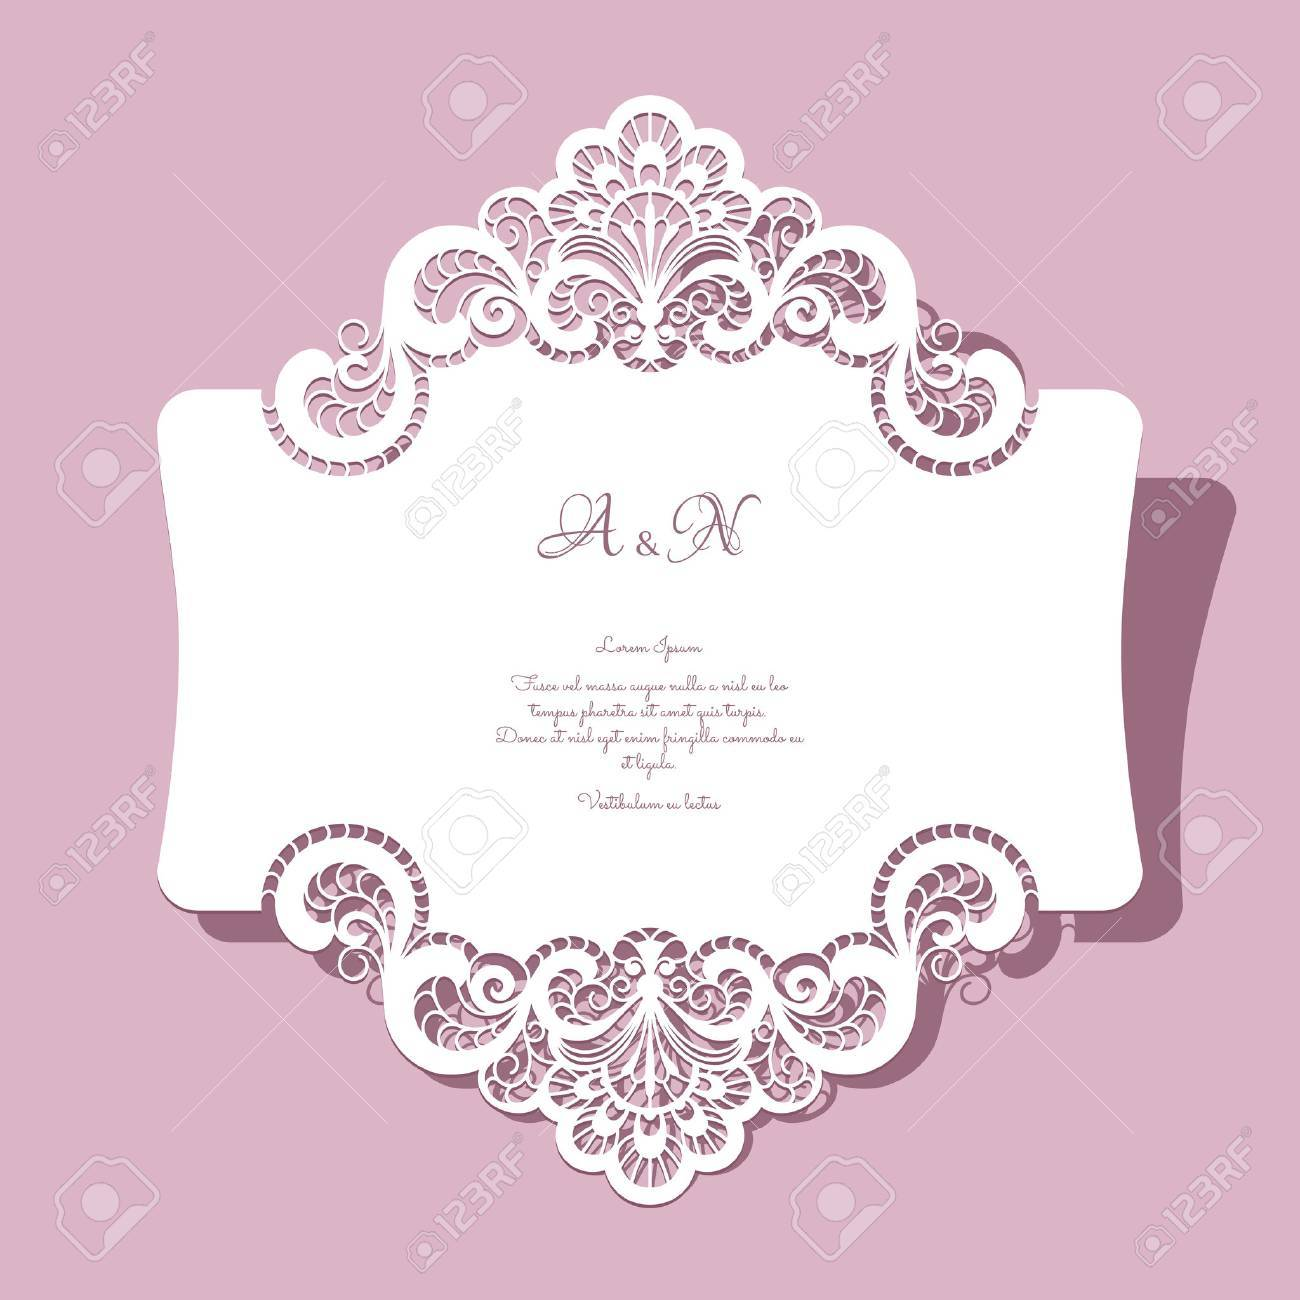 Elegant lace greeting card, wedding invitation or announcement template - 43127970